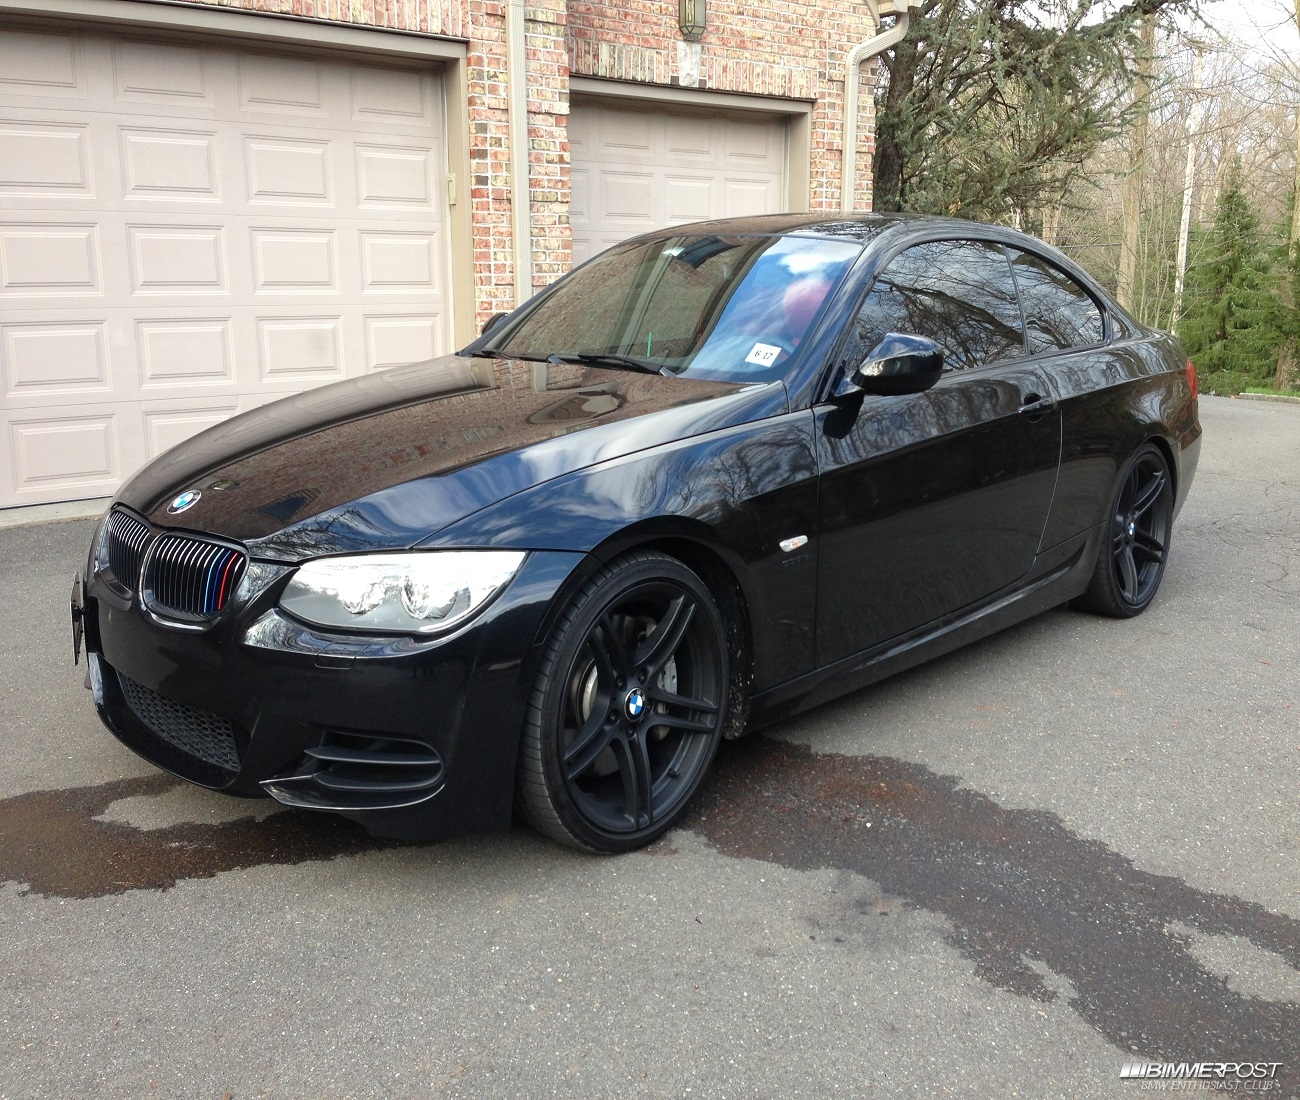 Timore's 2012 BMW E92 335is